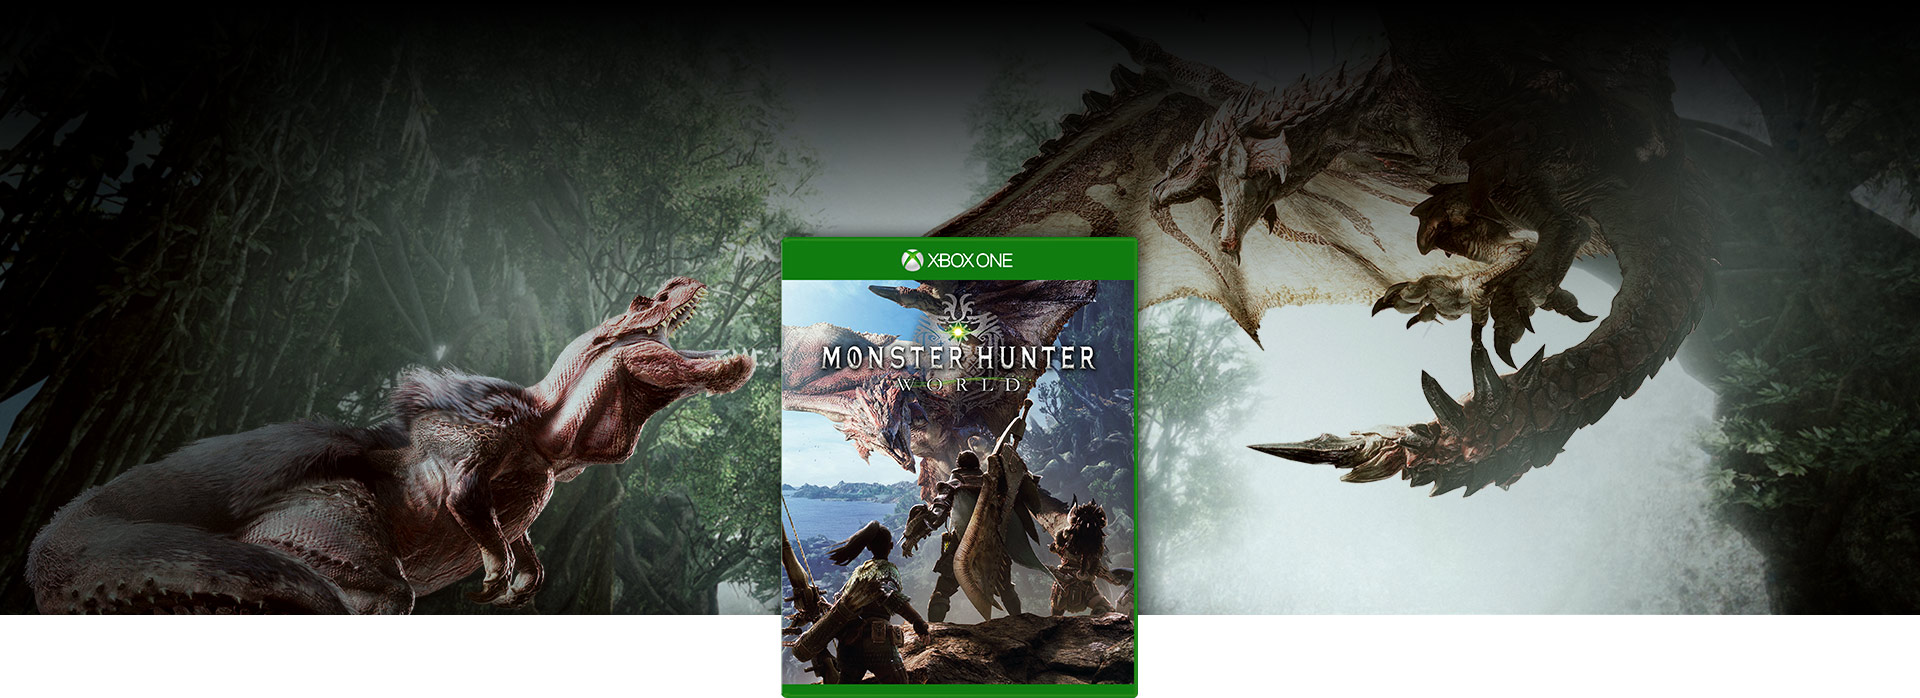 Monster Hunter World kutu resmi, uçan ejderha ile dinozor savaşıyor